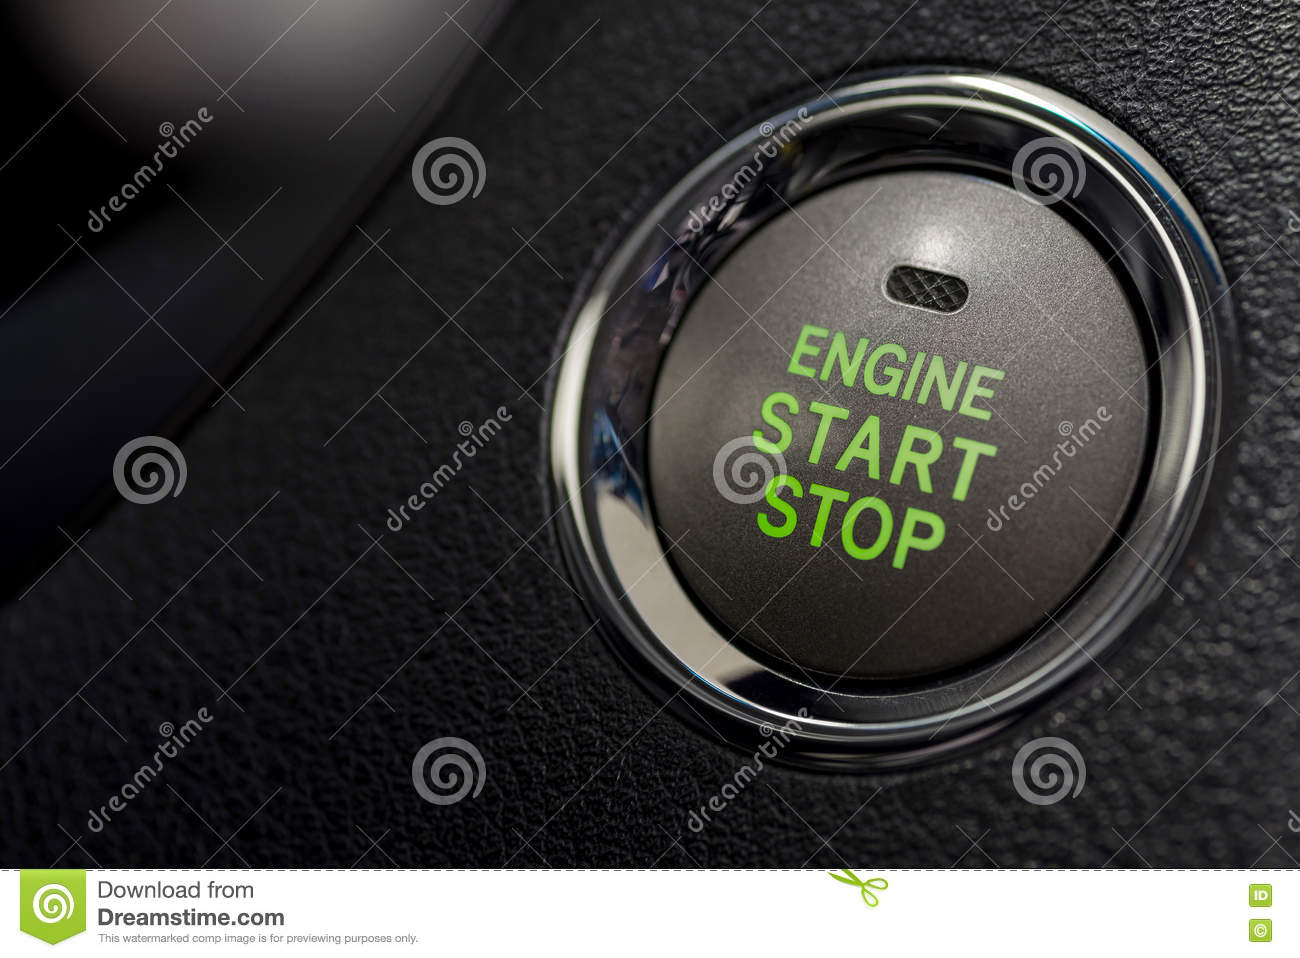 engine start stop button from a modern car interior stock photography 60335822. Black Bedroom Furniture Sets. Home Design Ideas